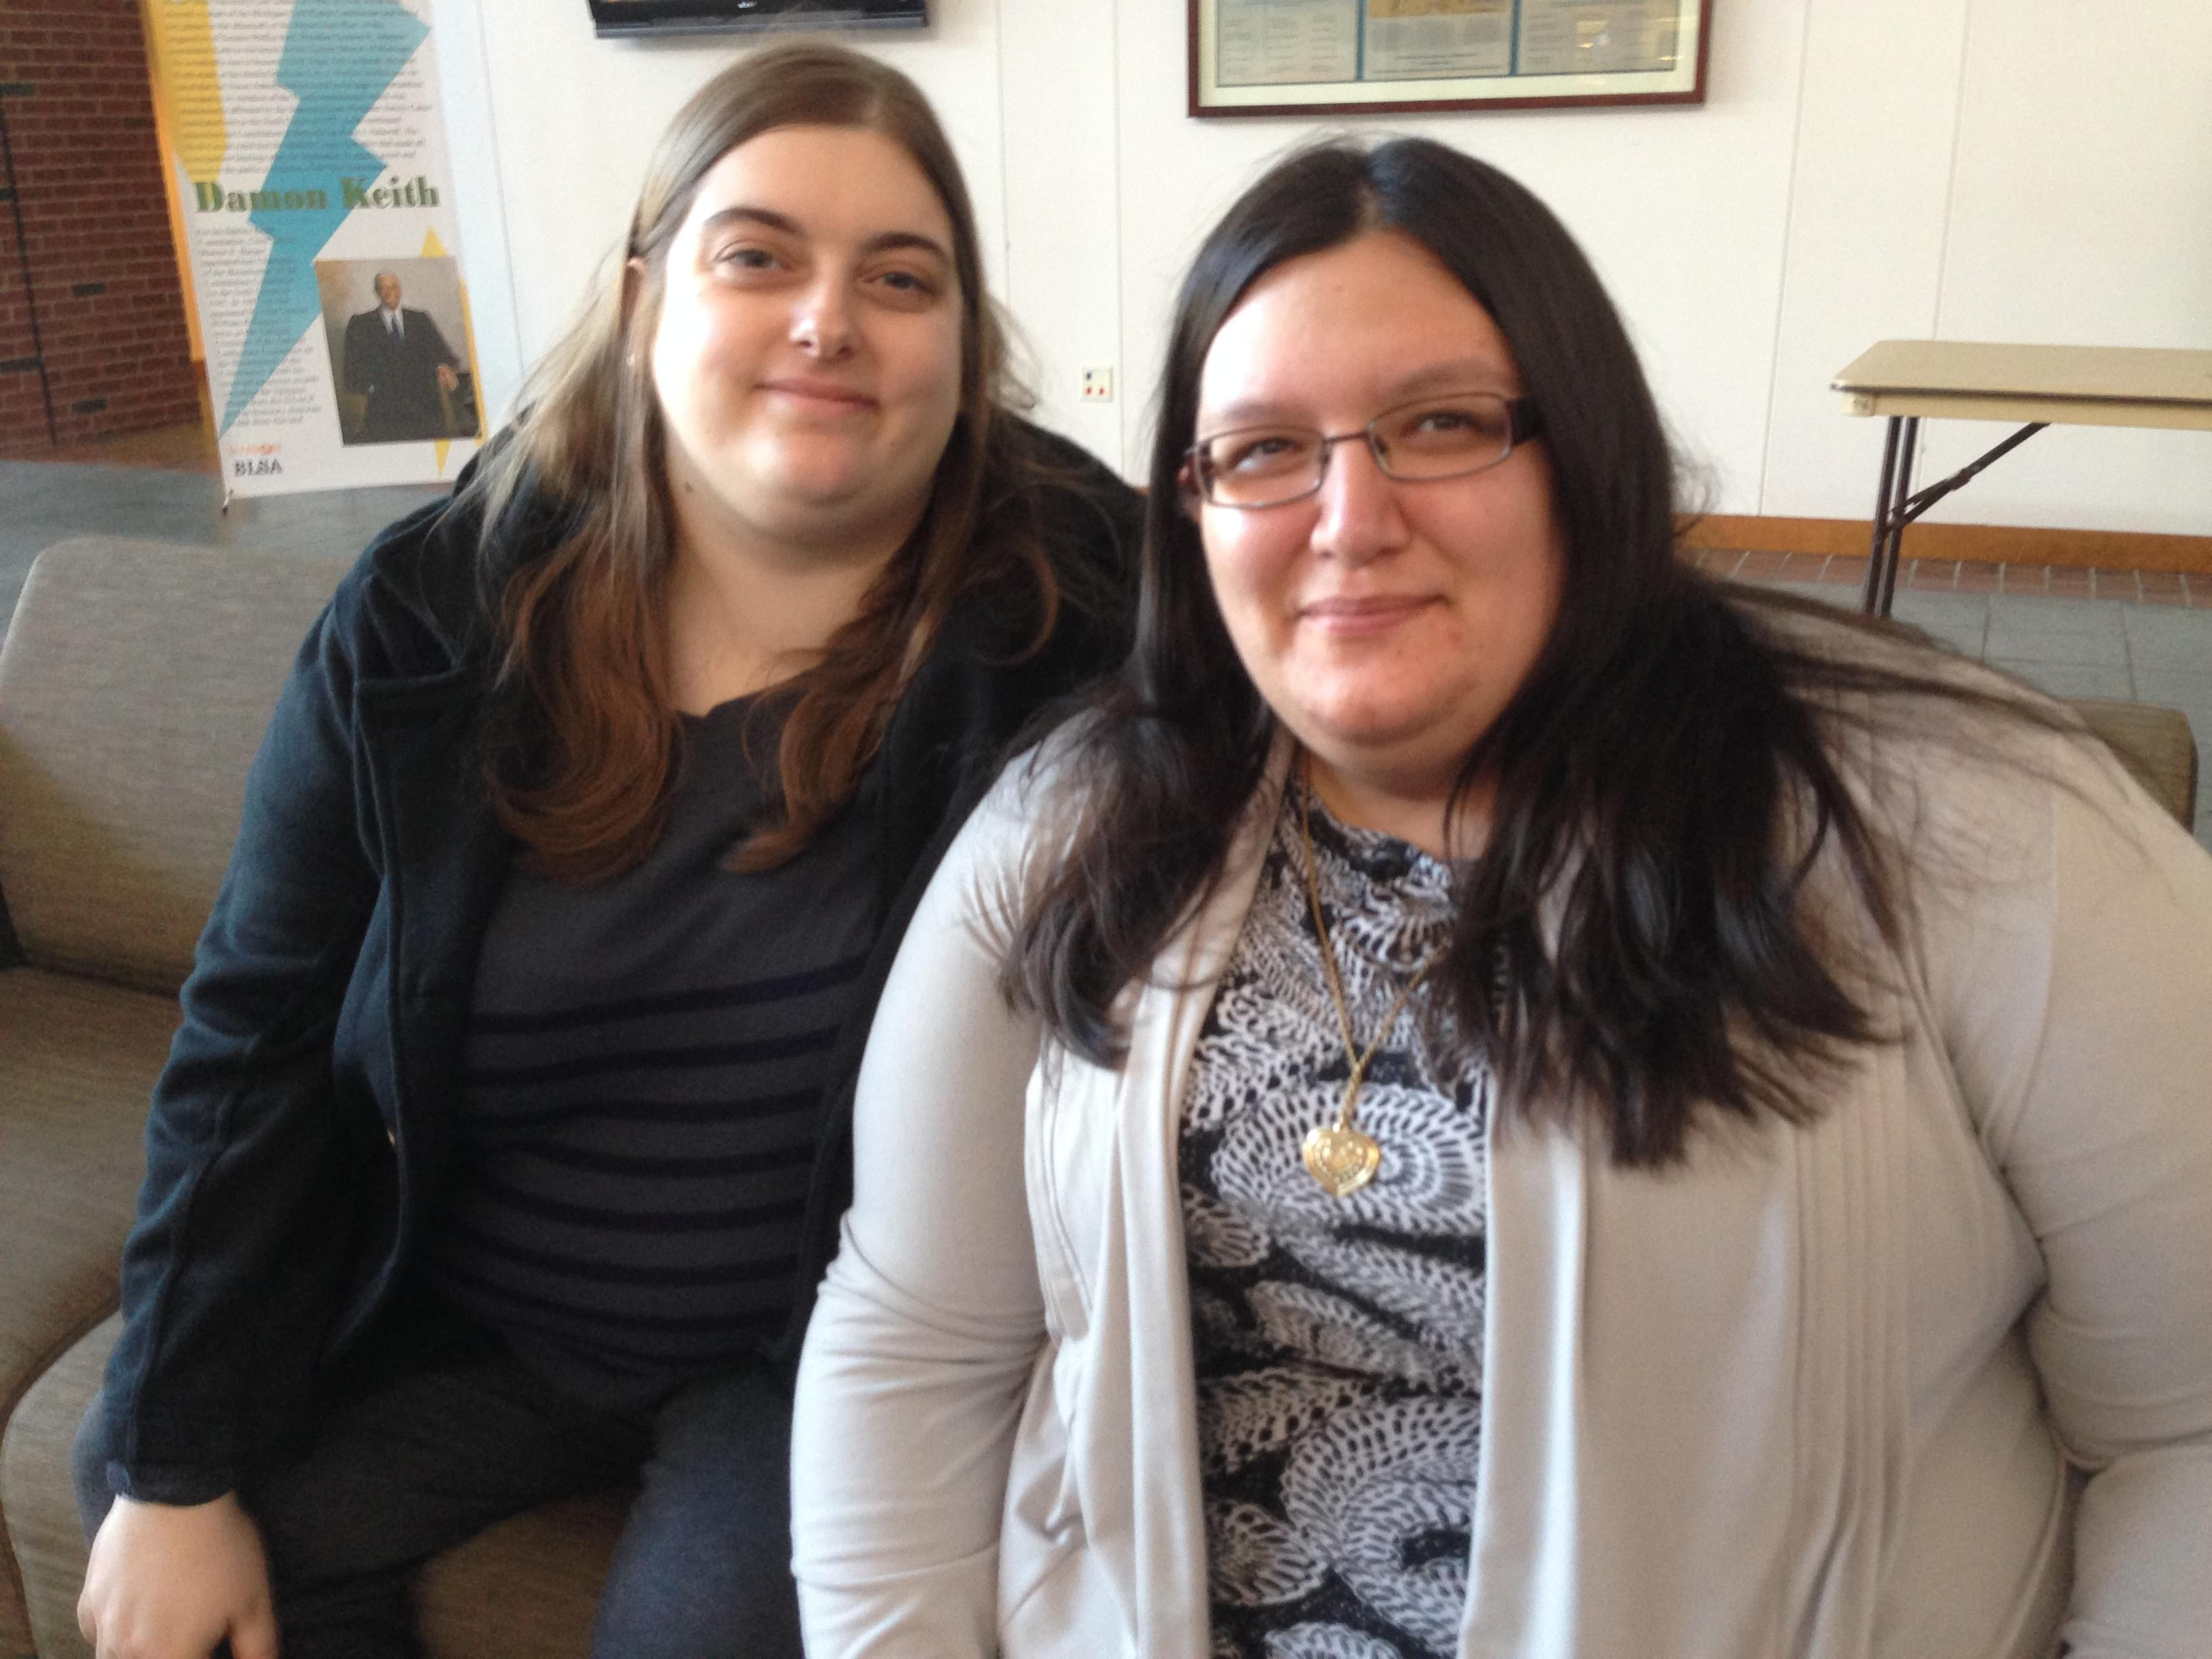 Marissa Meli, 28, and Laura Meli, 27, have been in a relationship for more than eight years, and on Wednesday, Feb. 26, 2014 became the first same-sex couple in Champaign County to get a marriage license.